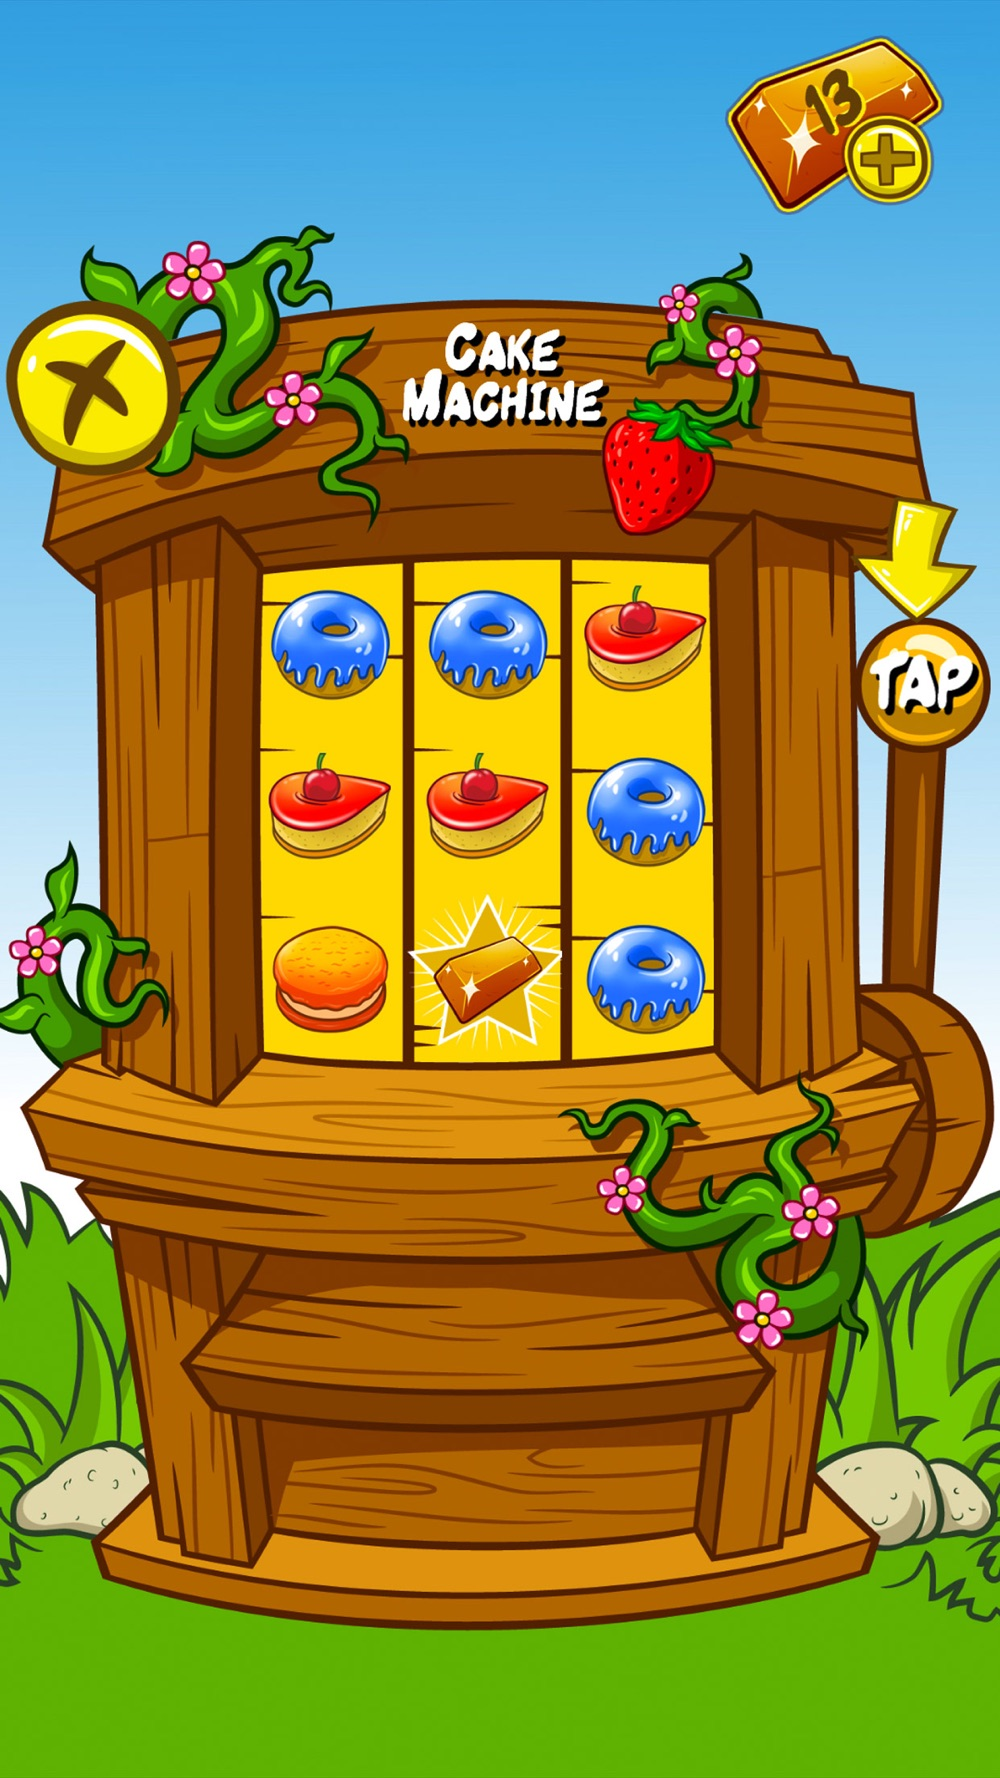 Take The Cake: Match 3 Puzzle hack tool